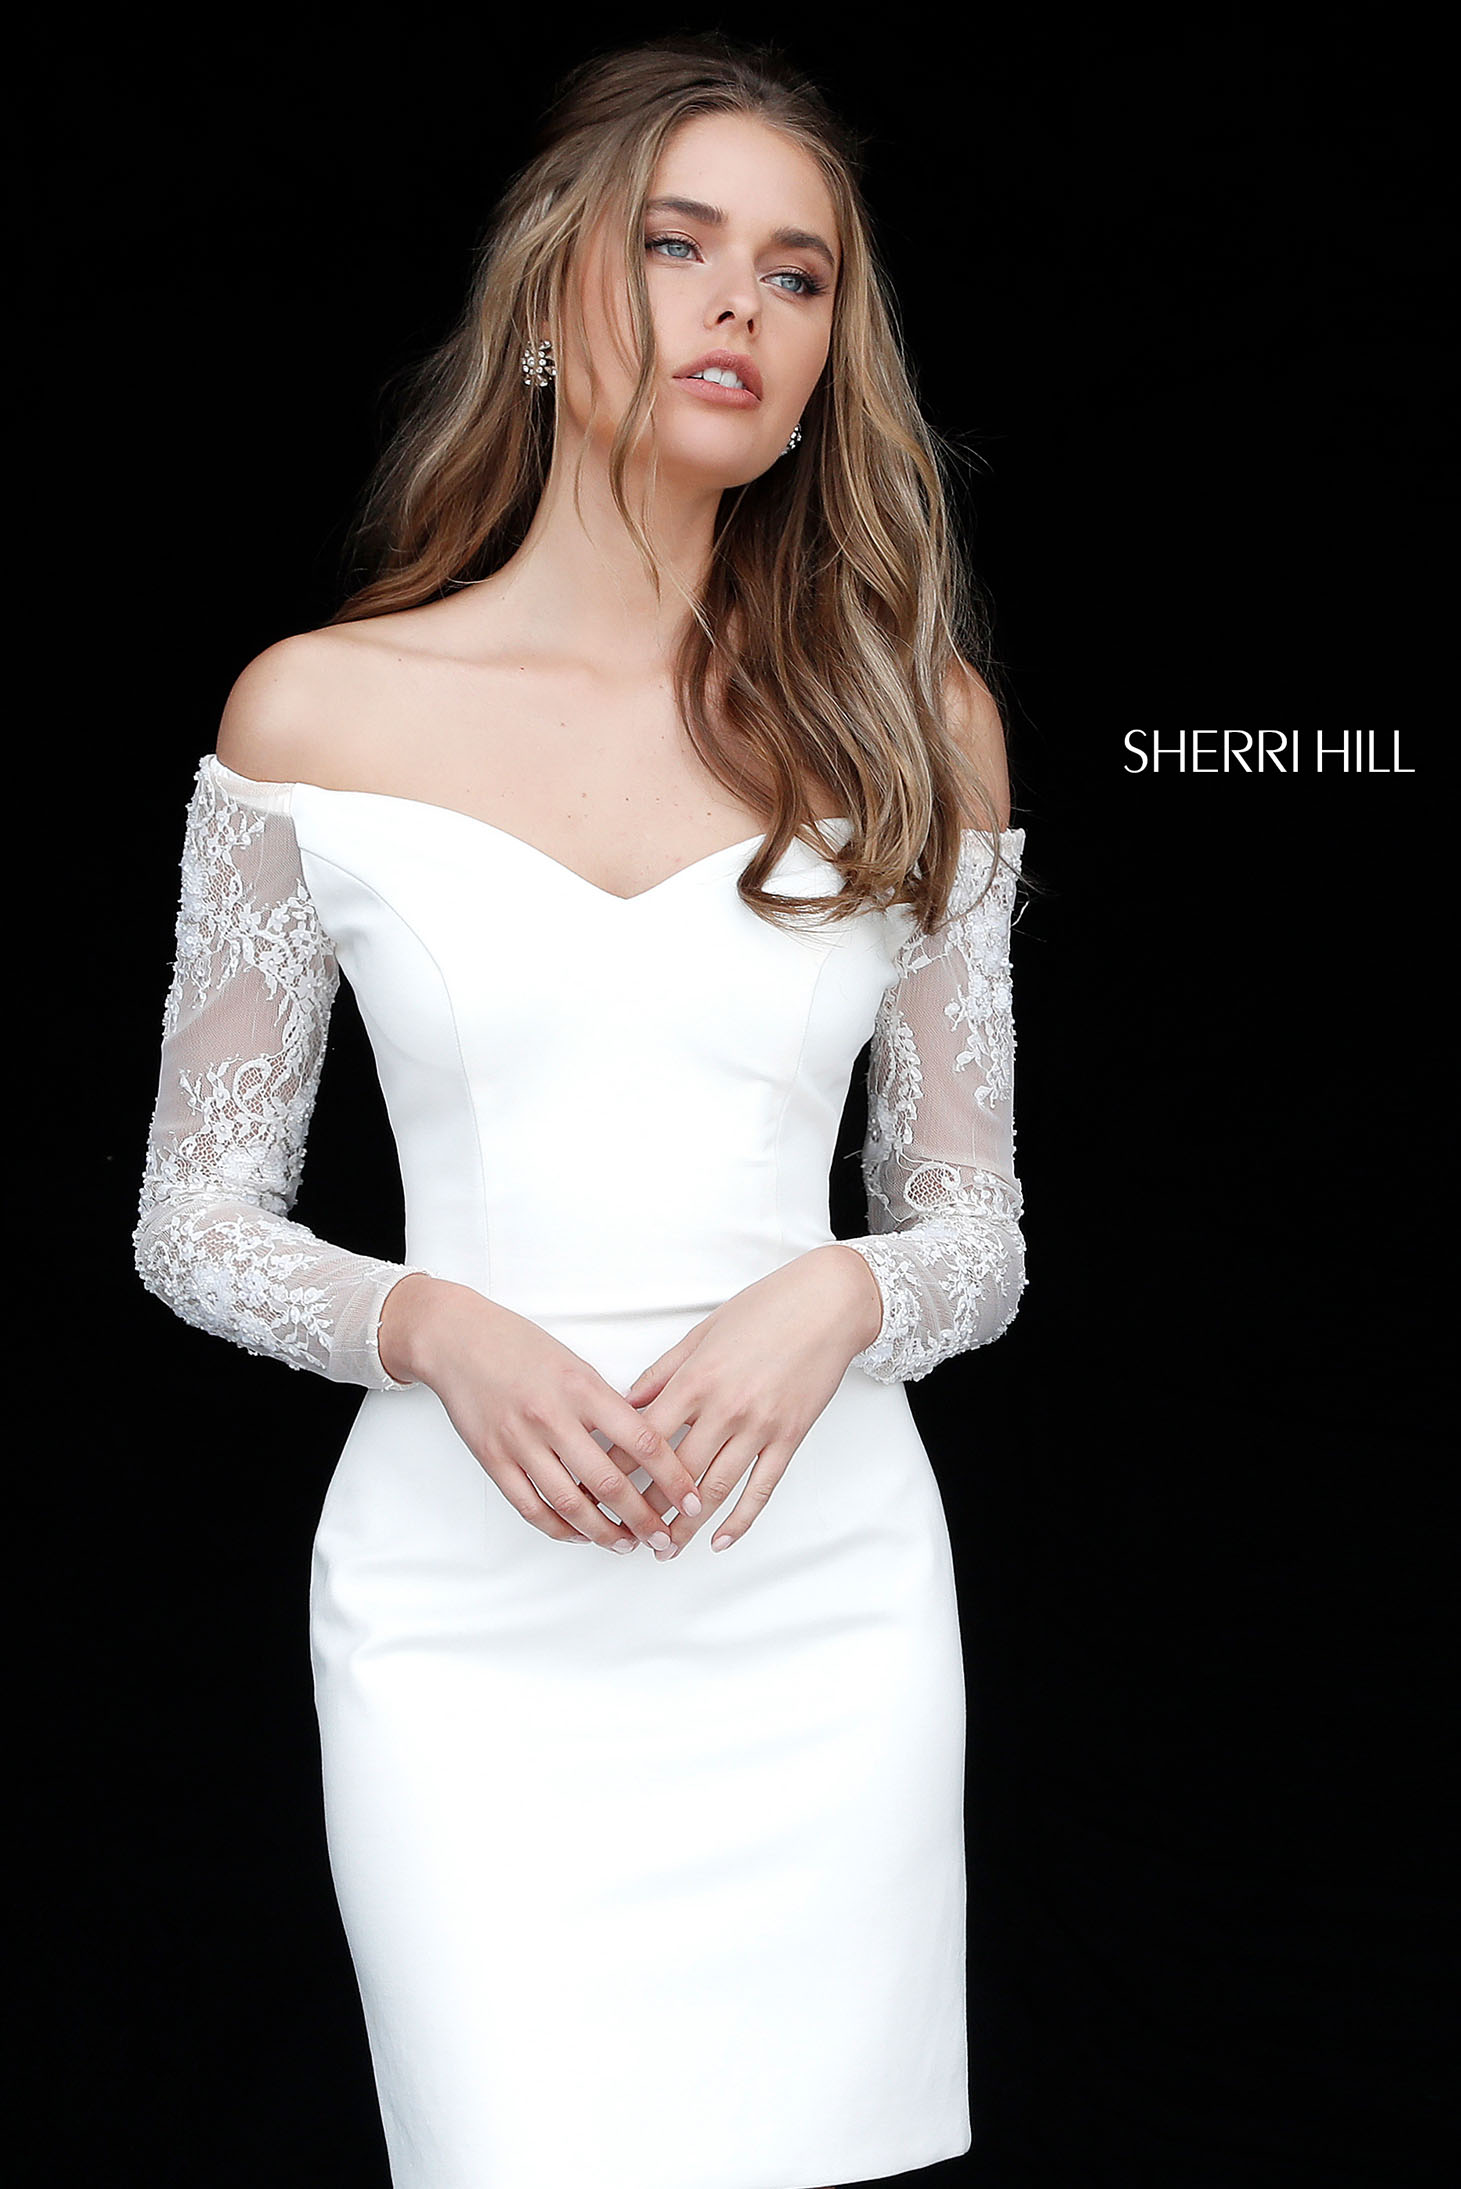 a8463c1ce0 sherri-hill-51361-white-dress-S032221-3-315514.jpg